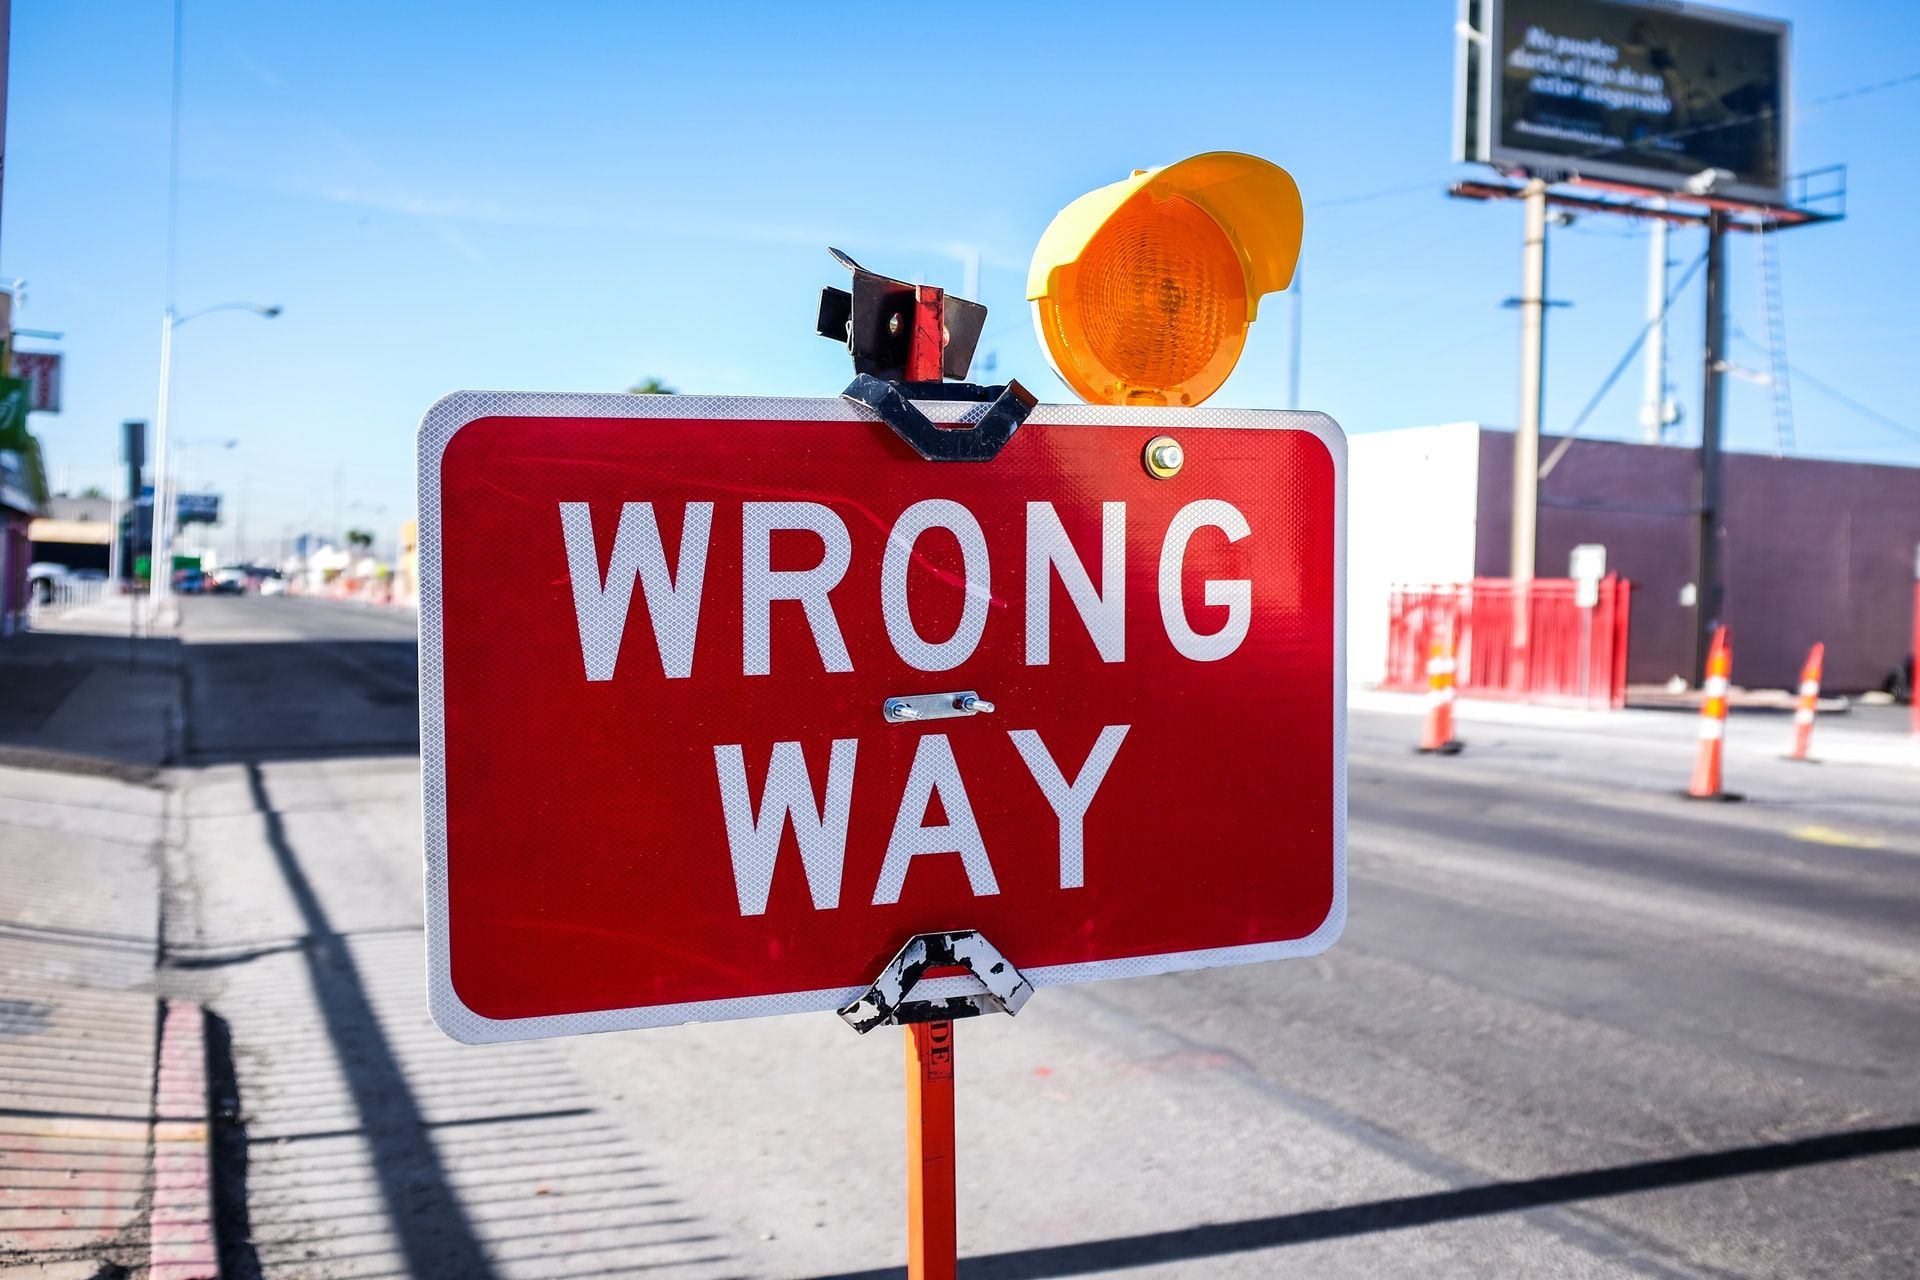 HOLD YOUR HORSES: Don\'t jump to the worst possible conclusion when faced with a challenge. Road sign in Las Vegas.